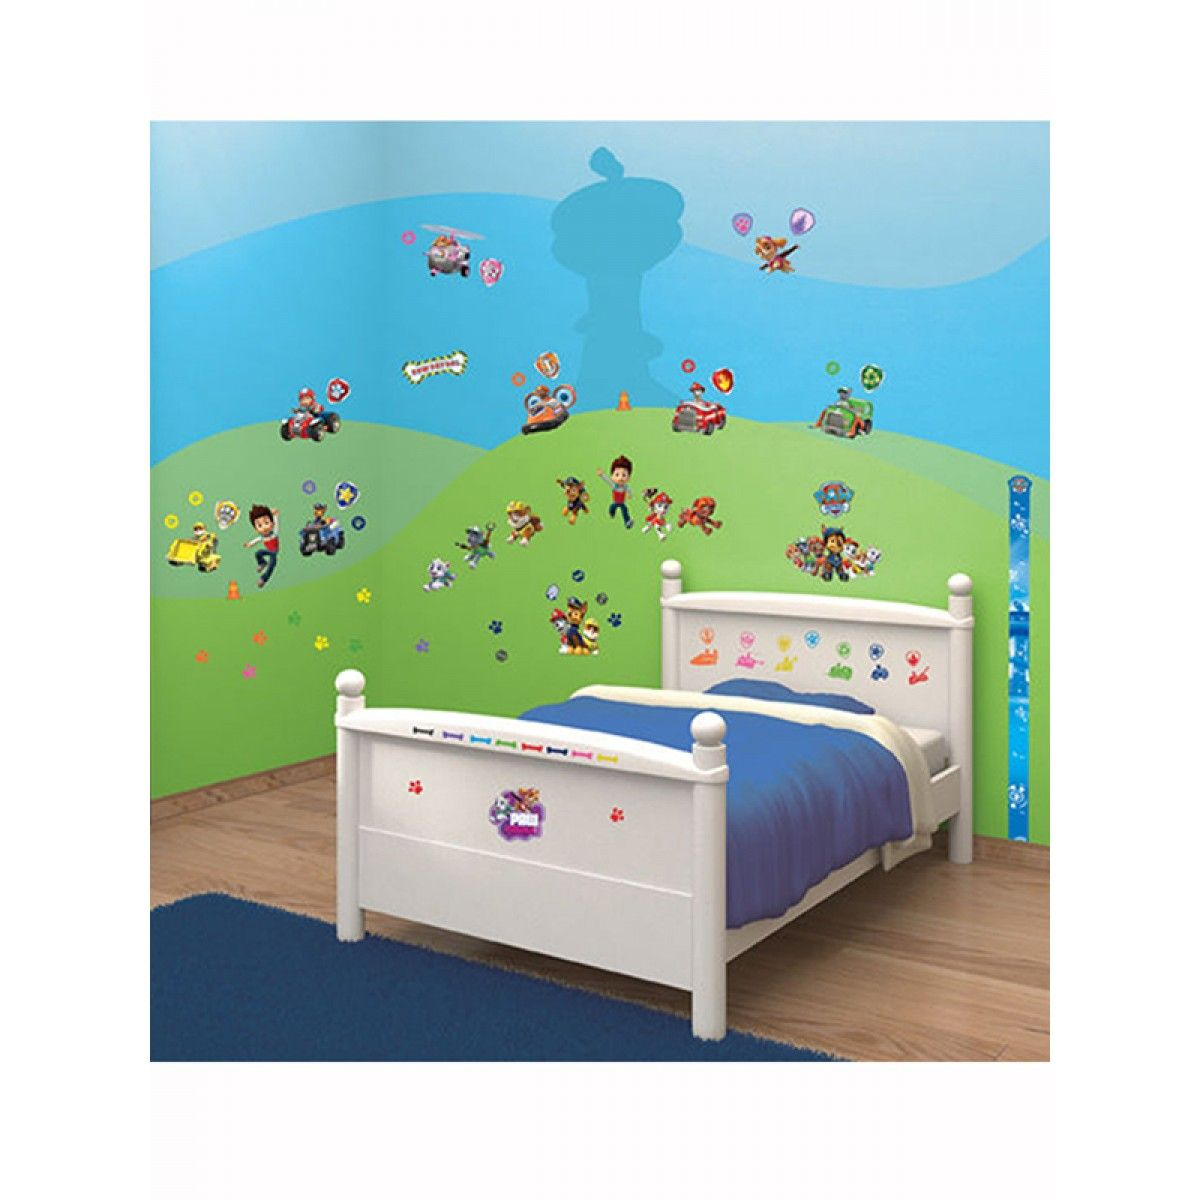 Create A Paw Patrol Themed Room In Minutes Ideal For Bedrooms